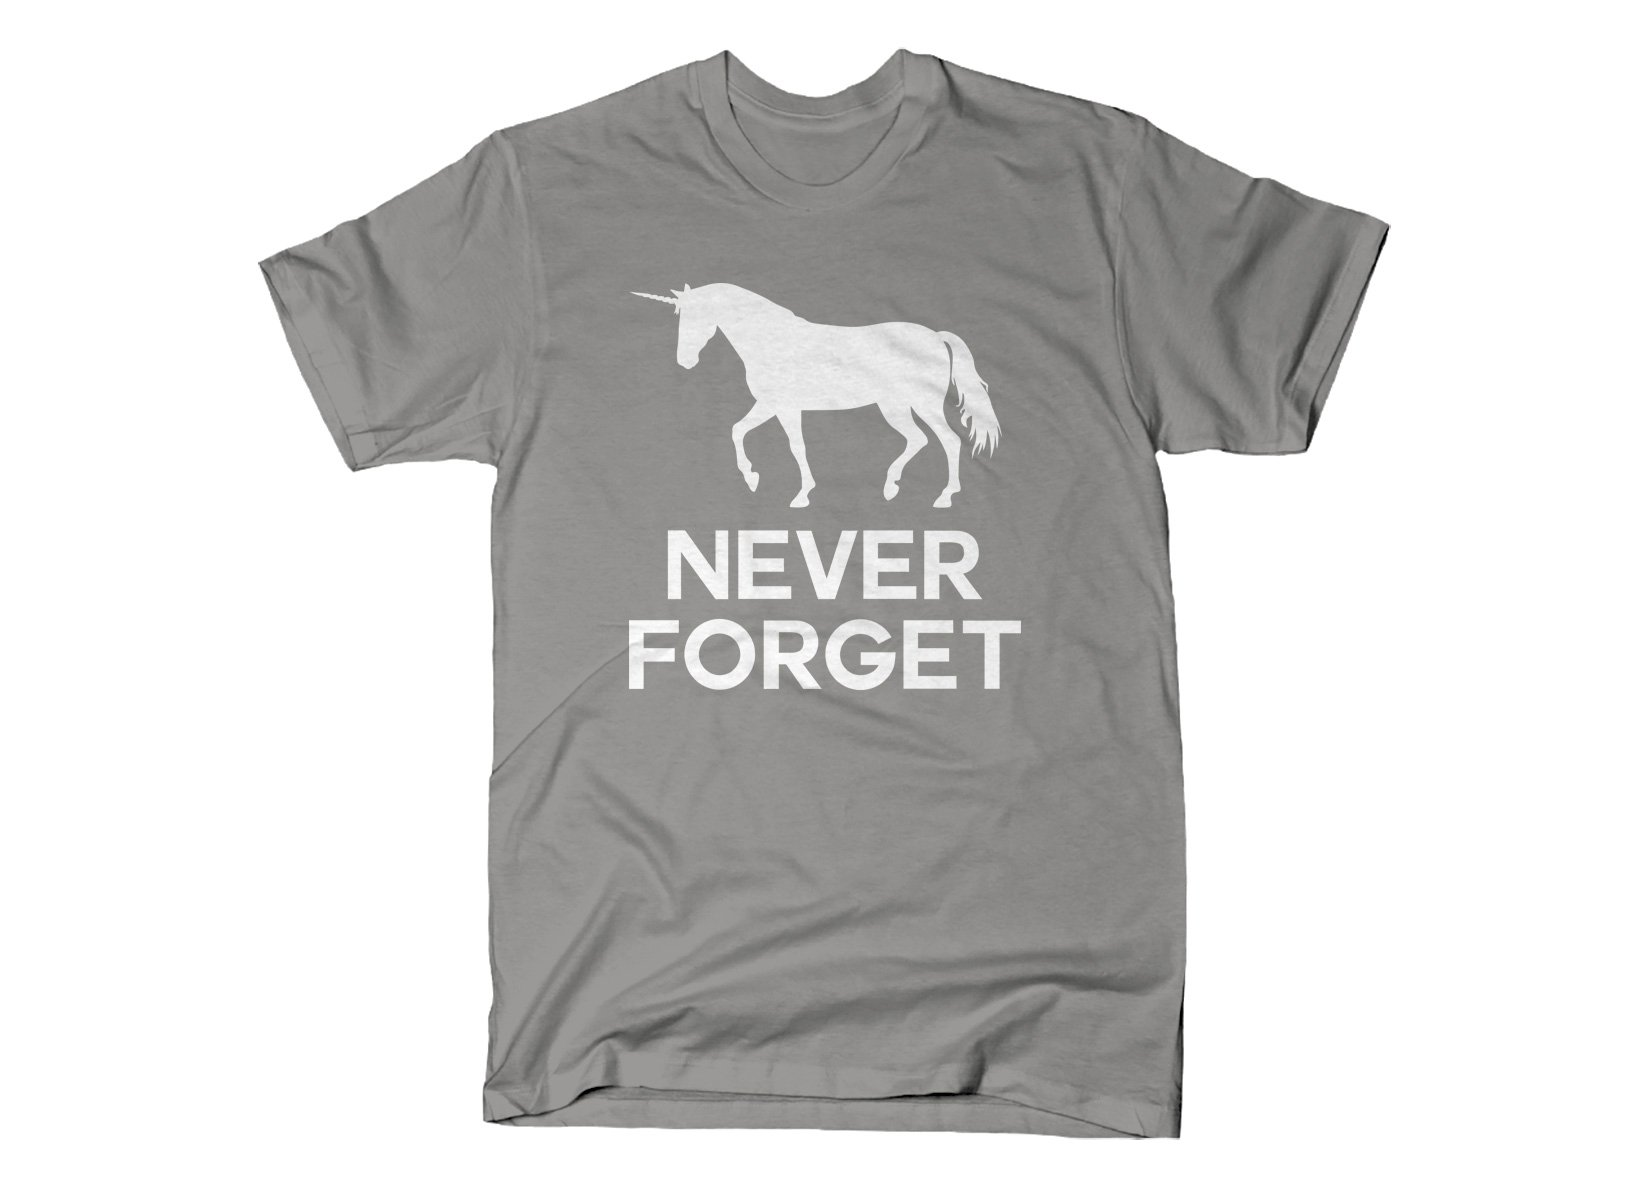 Unicorn Never Forget on Mens T-Shirt